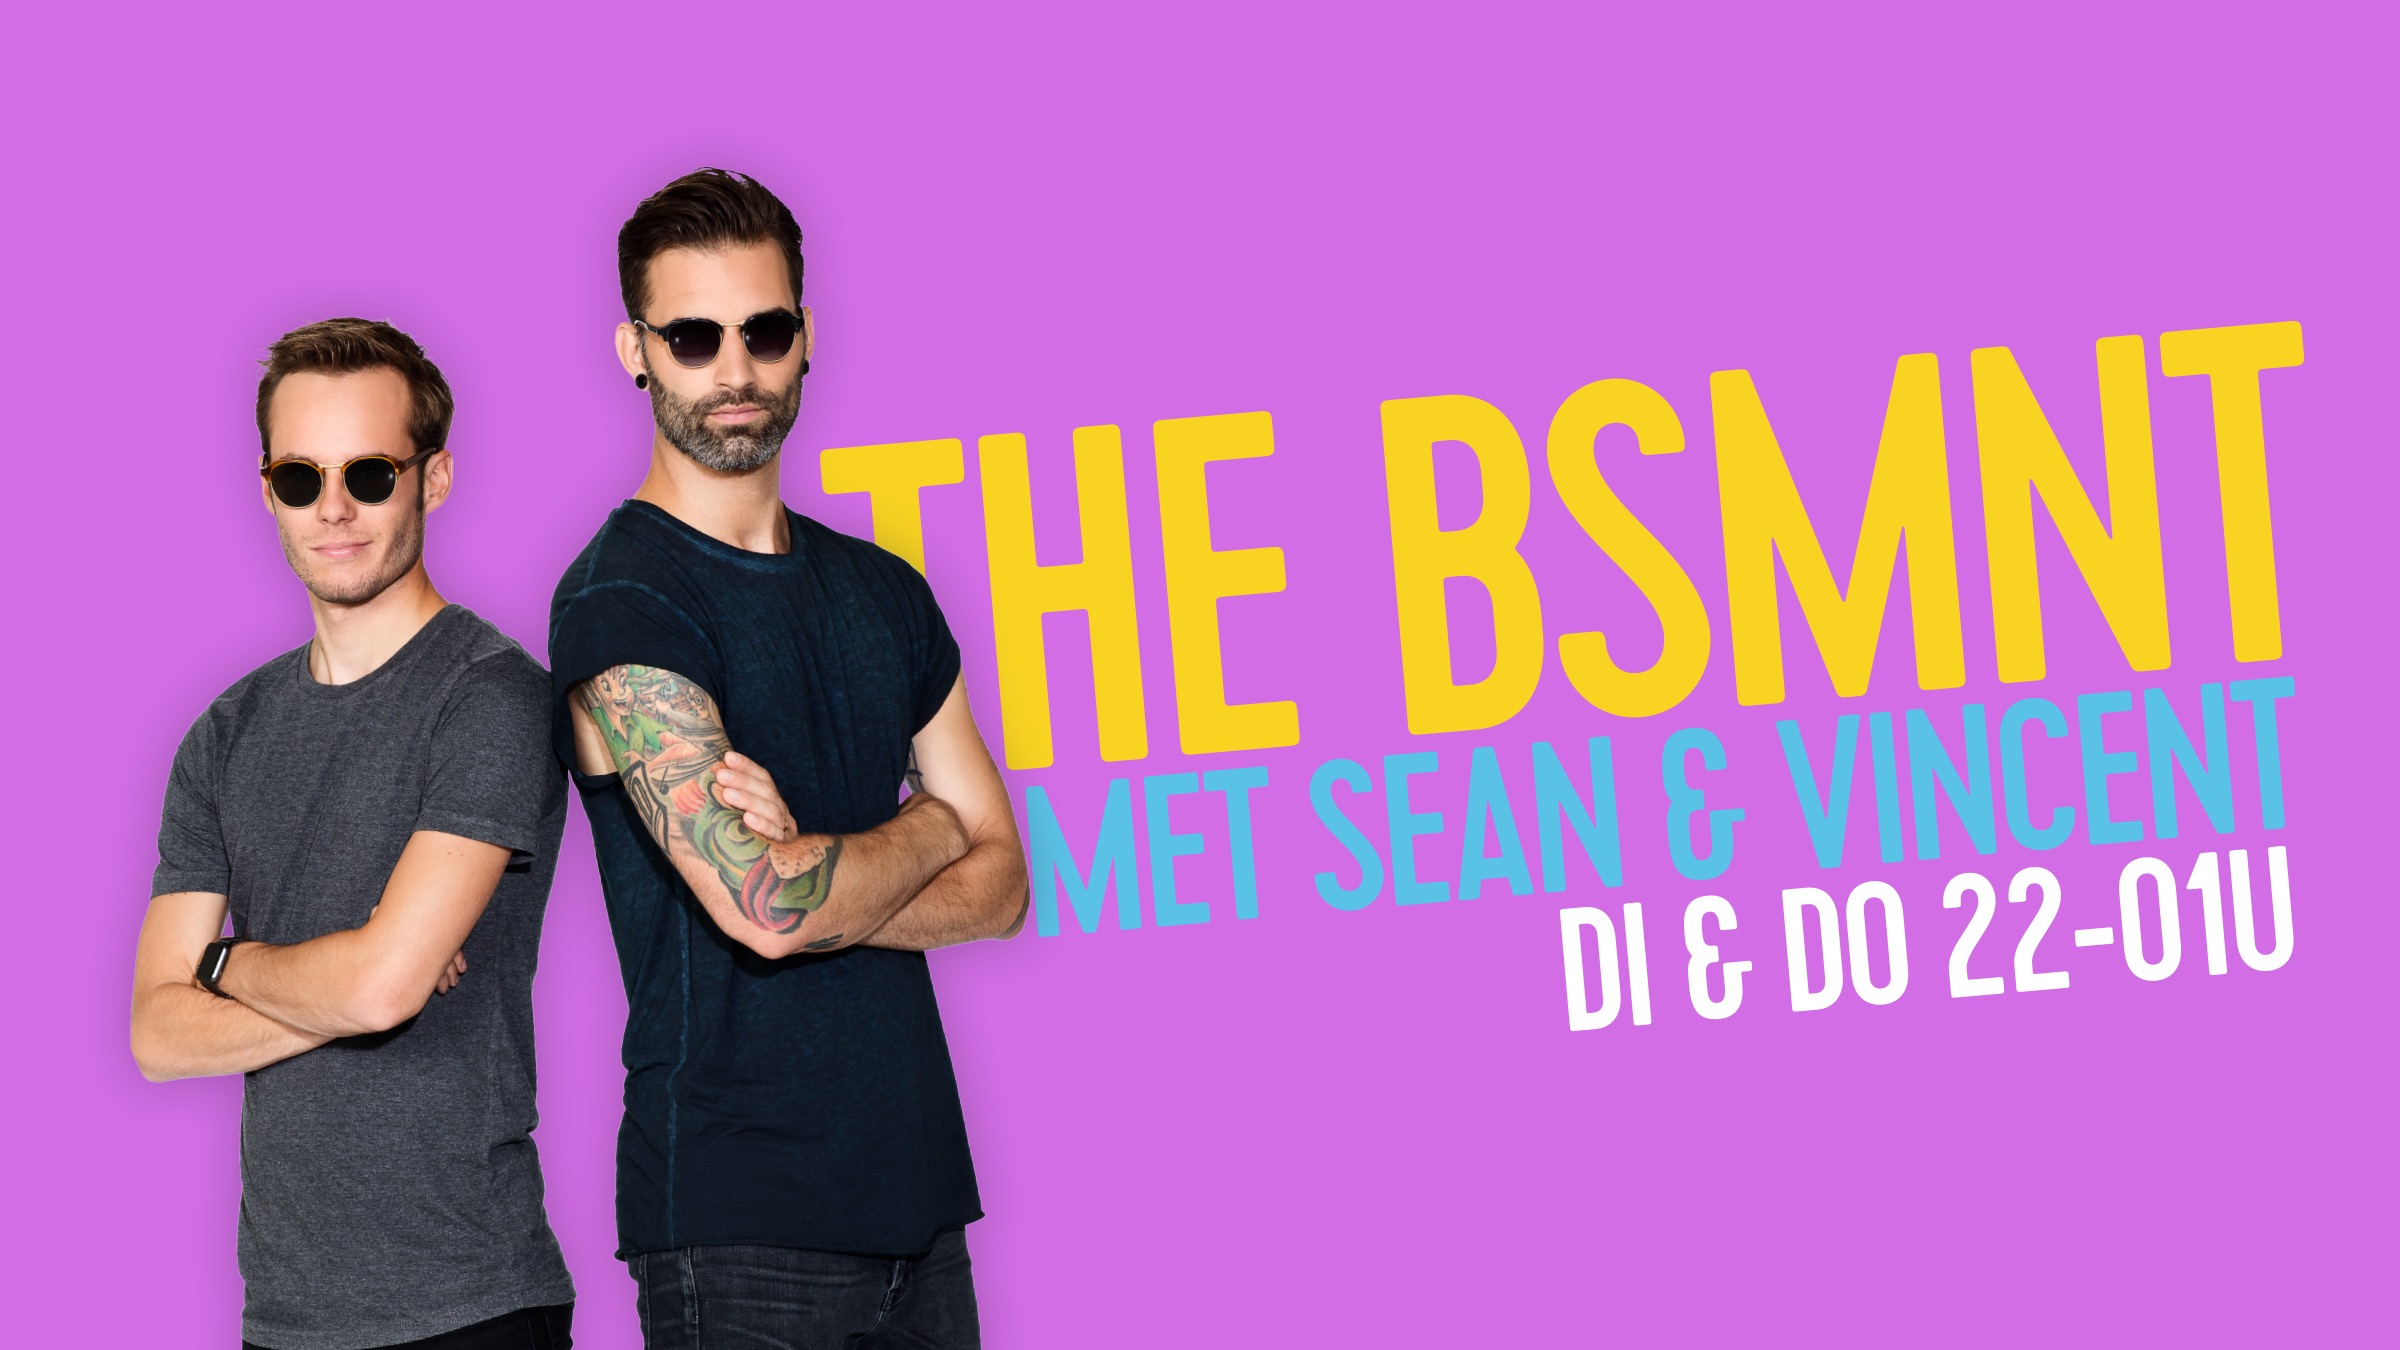 The bsmnt